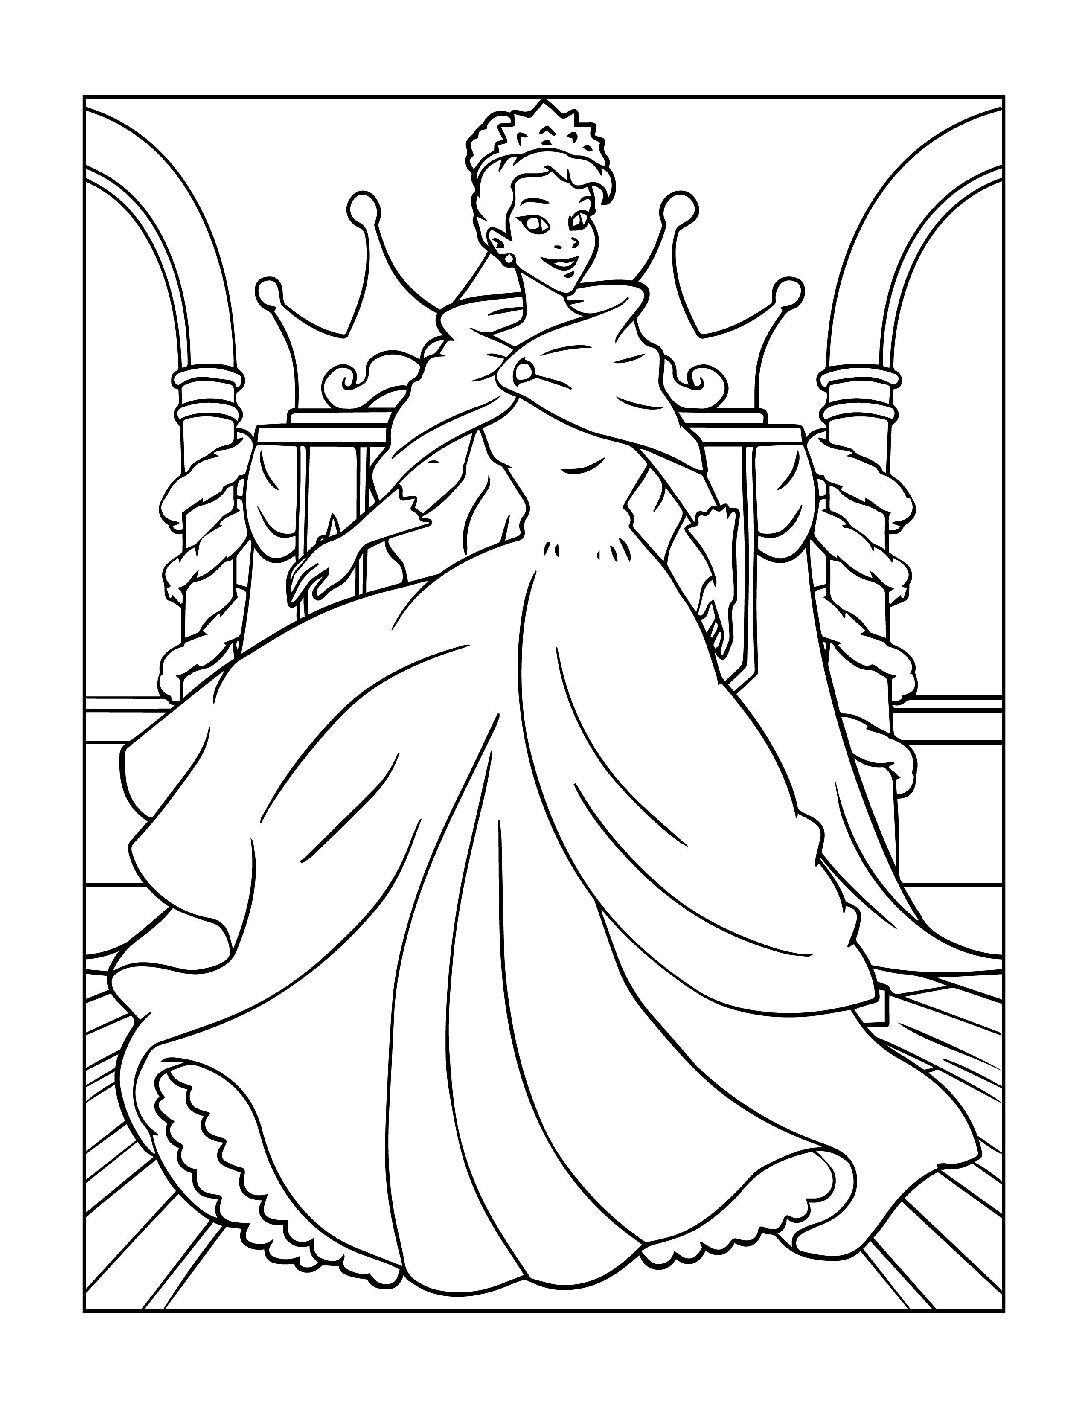 Coloring-Pages-Princess-14-01-pdf Free Printable Princesses Colouring Pages